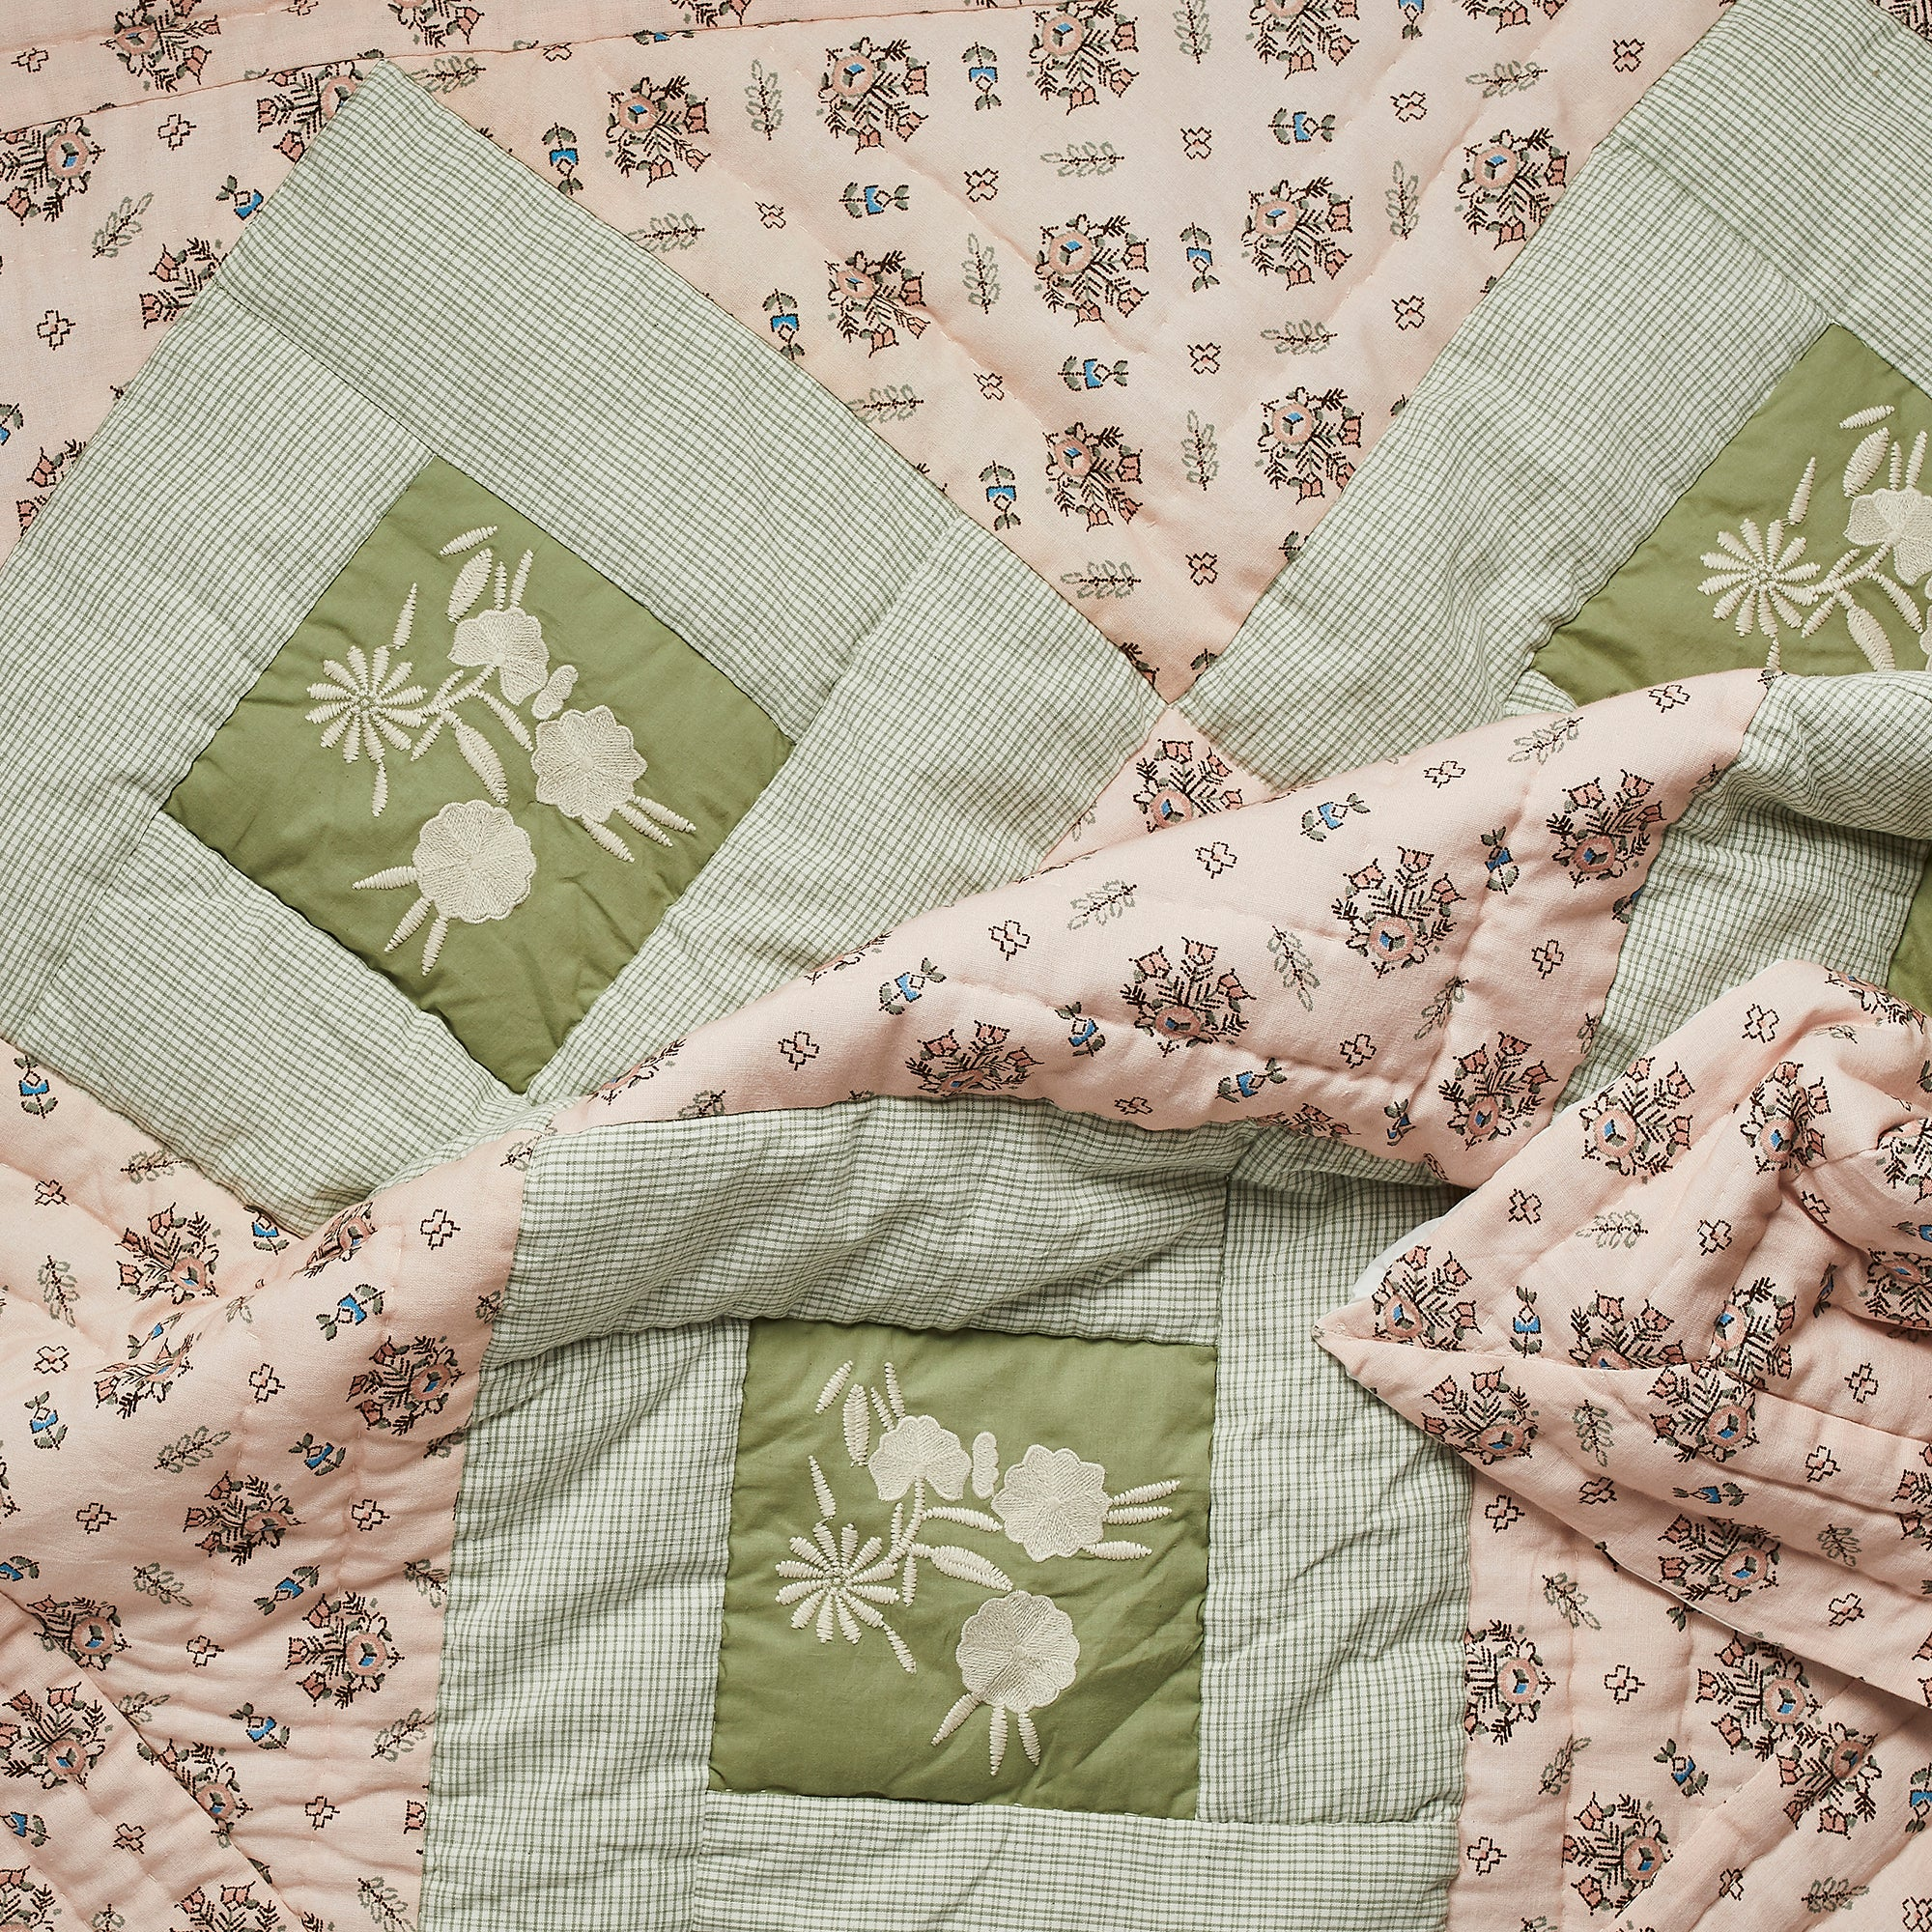 Apolina x Projekti Tyyny 'Strawberry Mountain' Baby Quilt (Small)